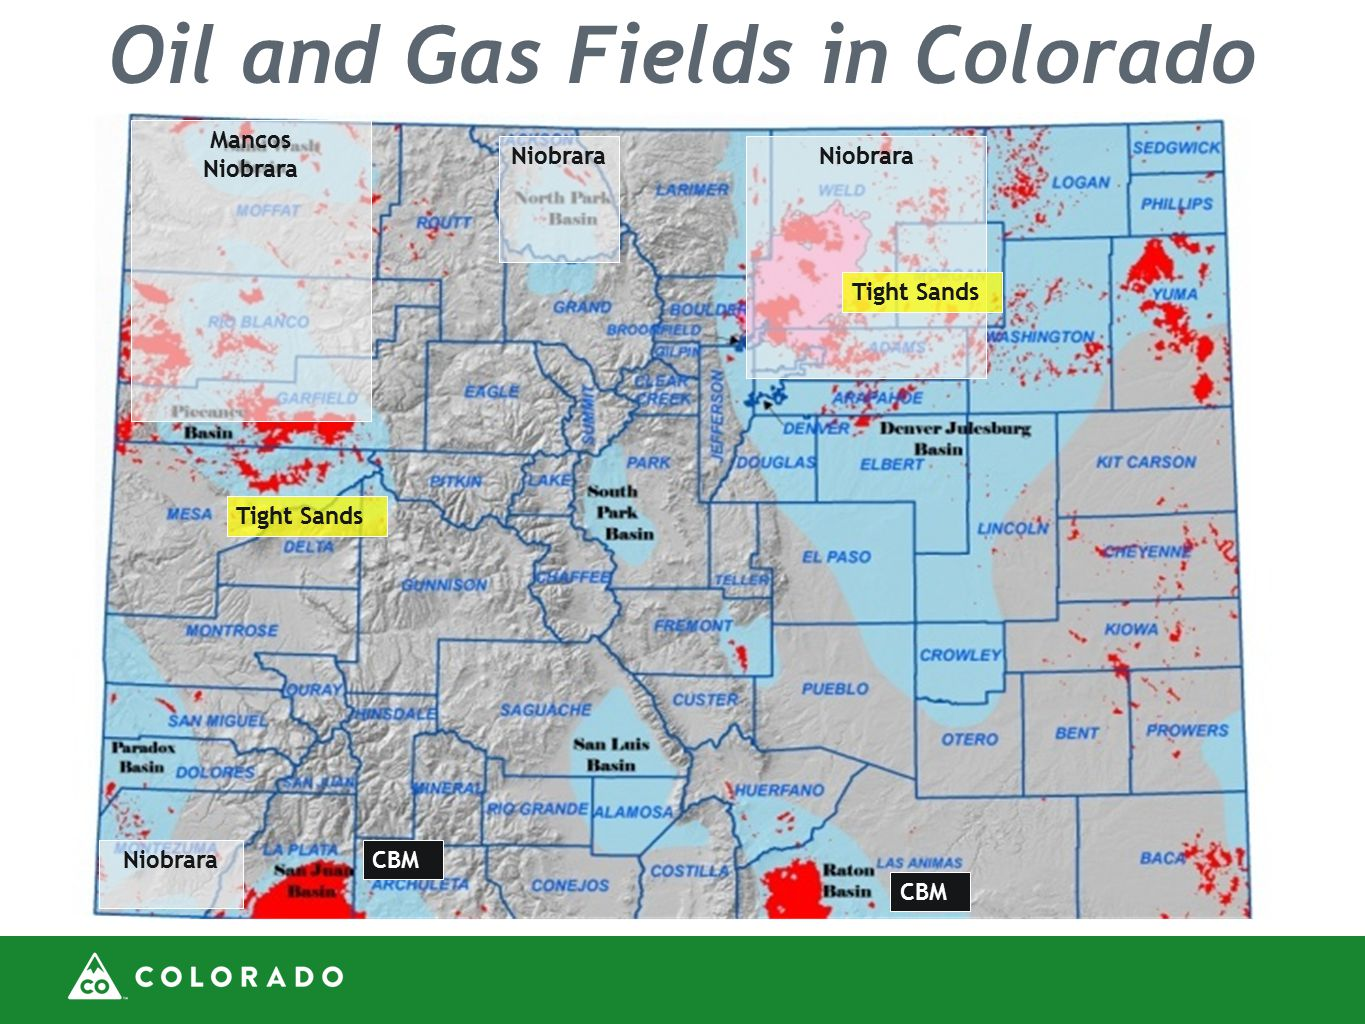 Oil and Gas Fields in Colorado CBM Niobrara Mancos Niobrara Tight Sands Niobrara CBM Niobrara Tight Sands